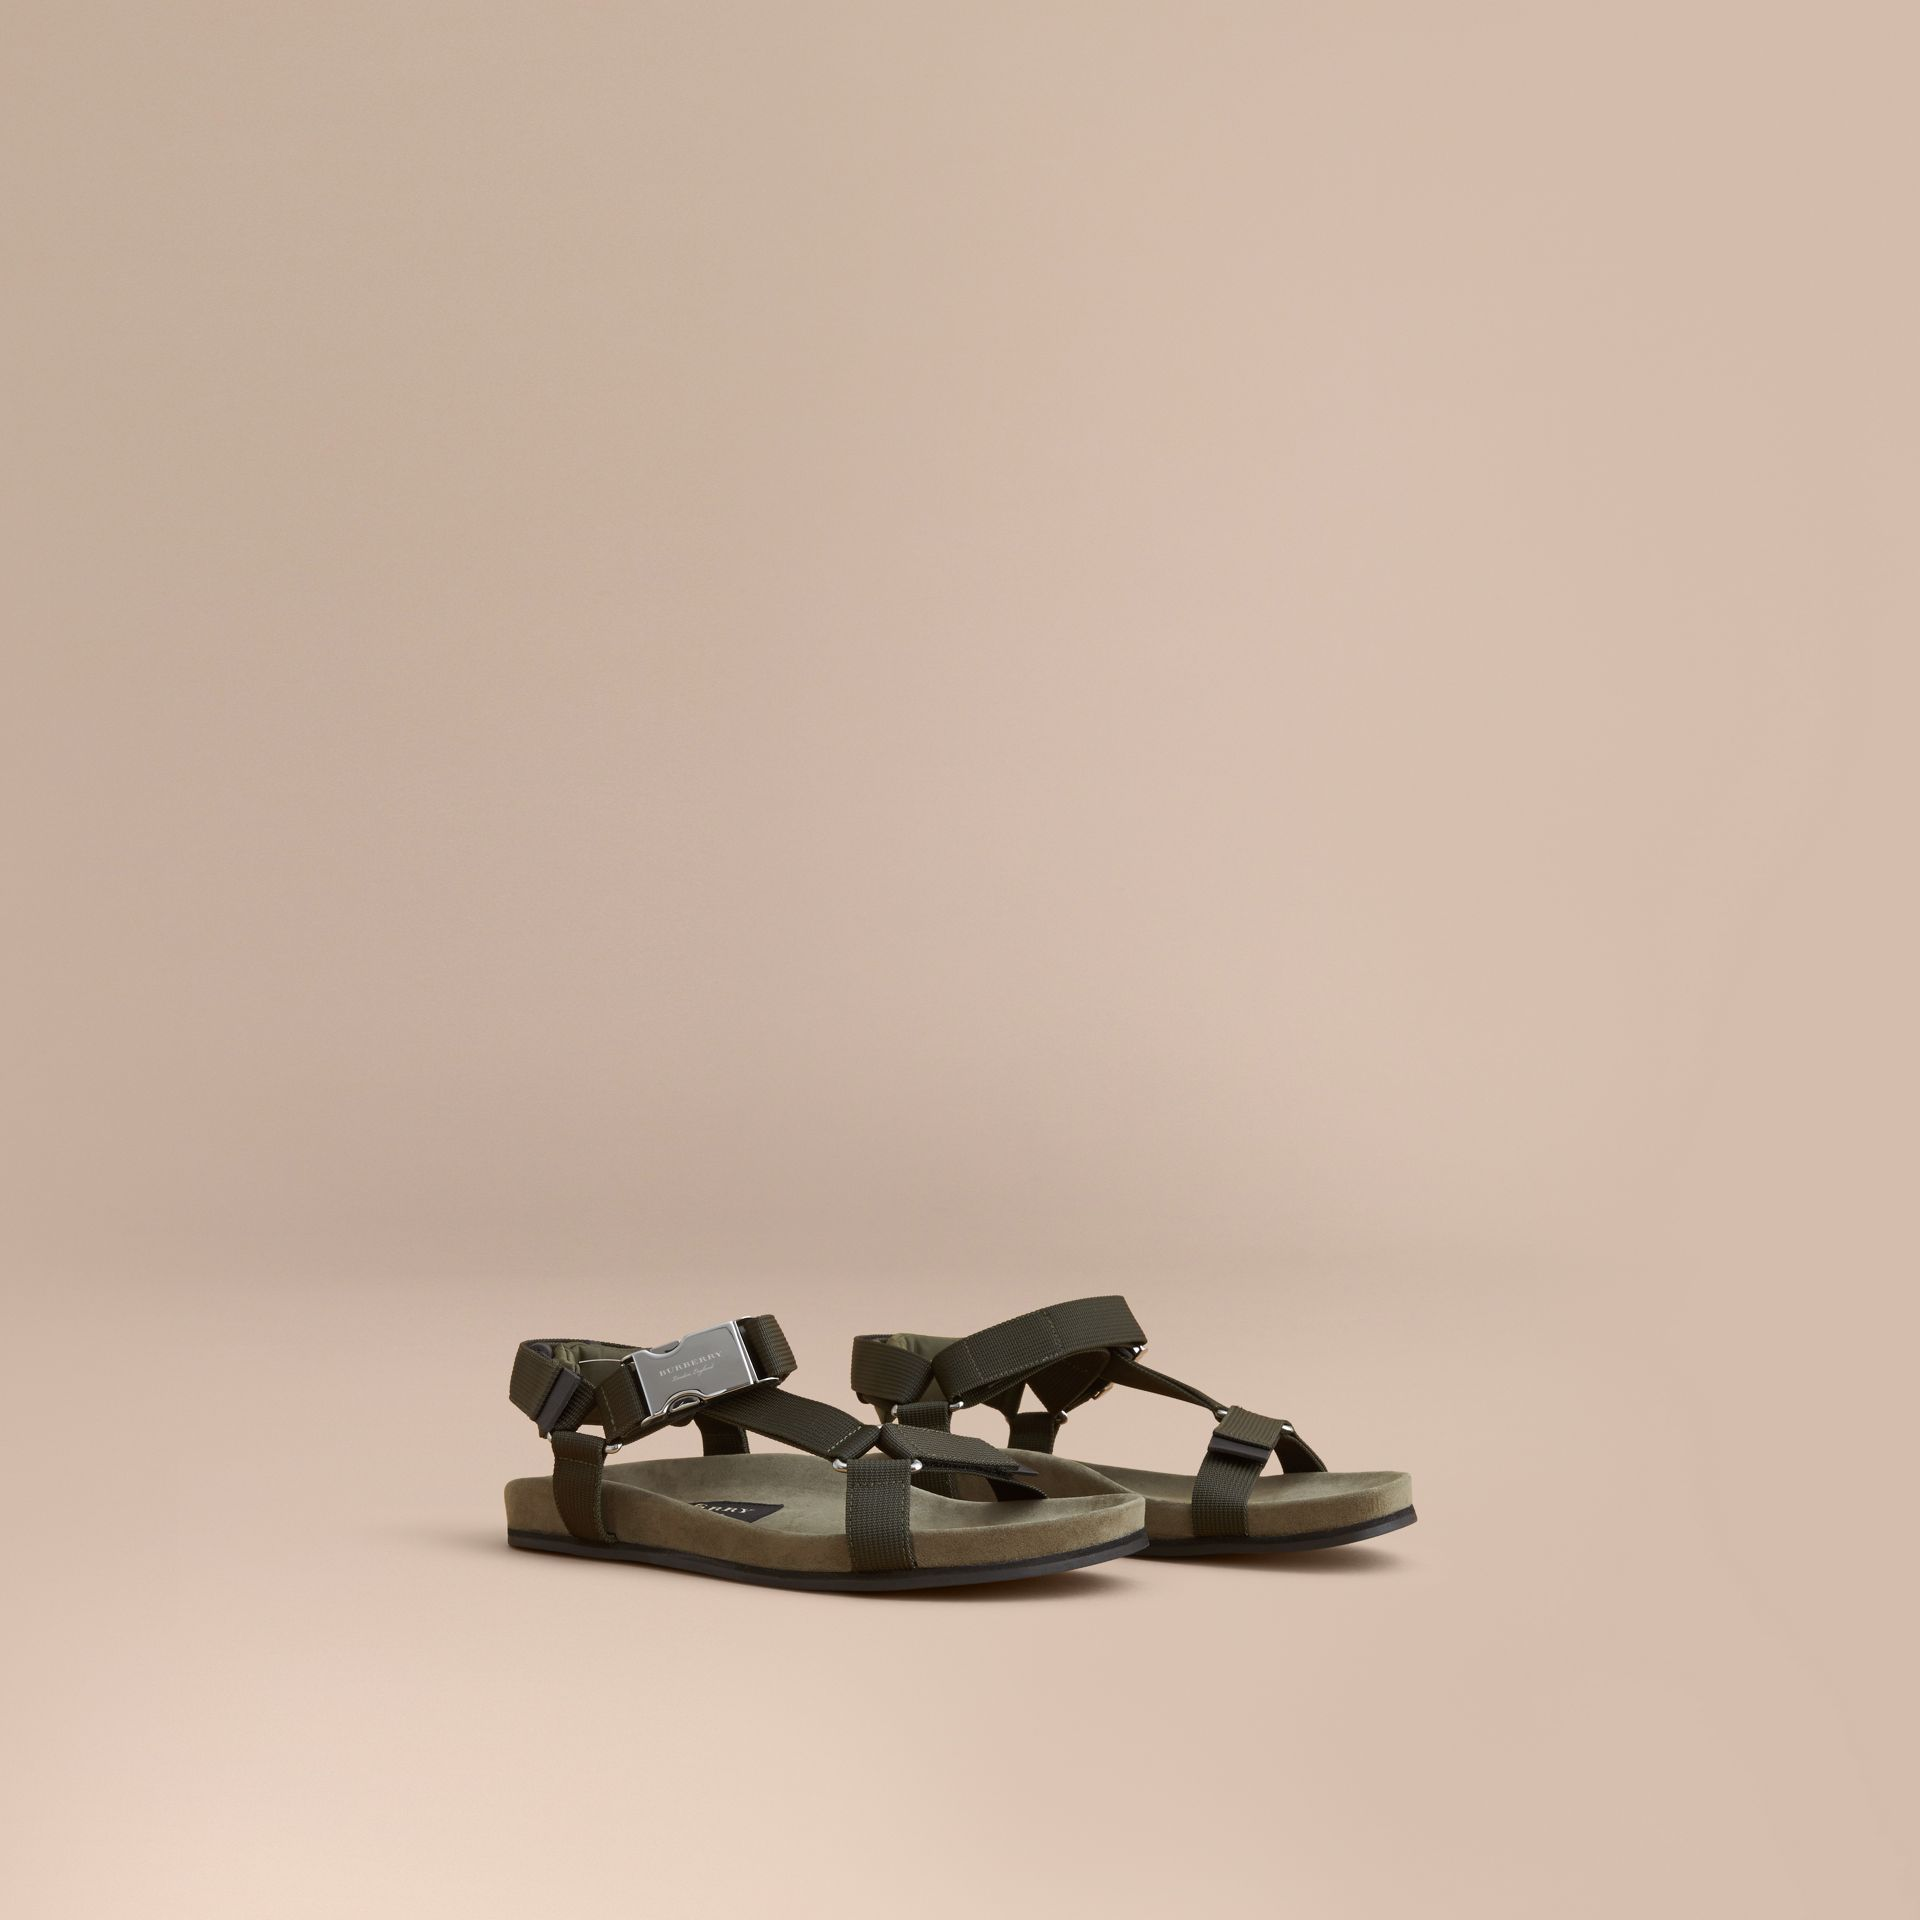 Three-point Strap Ripstop Sandals in Khaki - Men | Burberry - gallery image 1